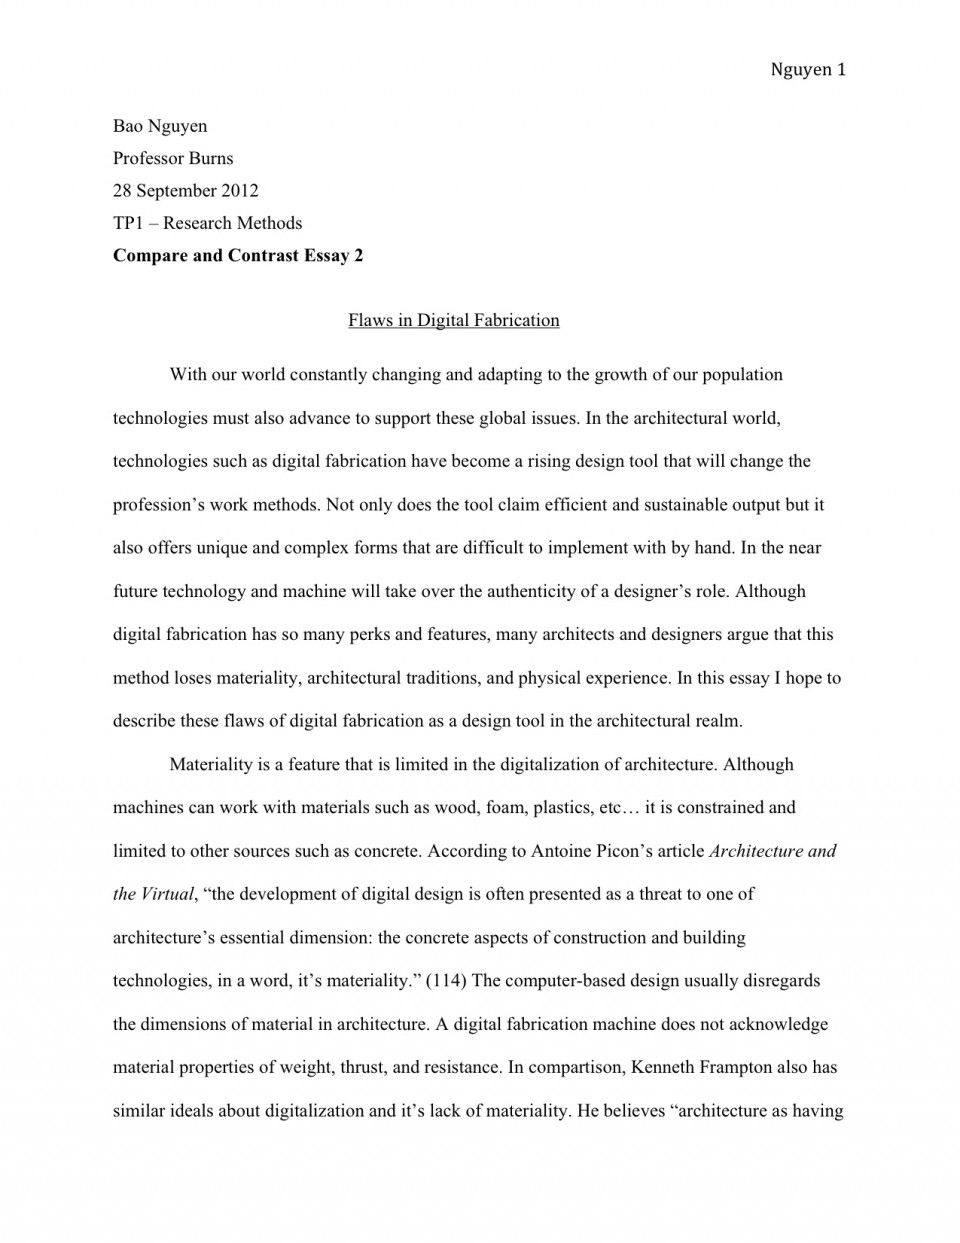 007 Essay Example Good Hooks For Essays Tp1 3 Unforgettable About War Examples Of Expository Heroes 960